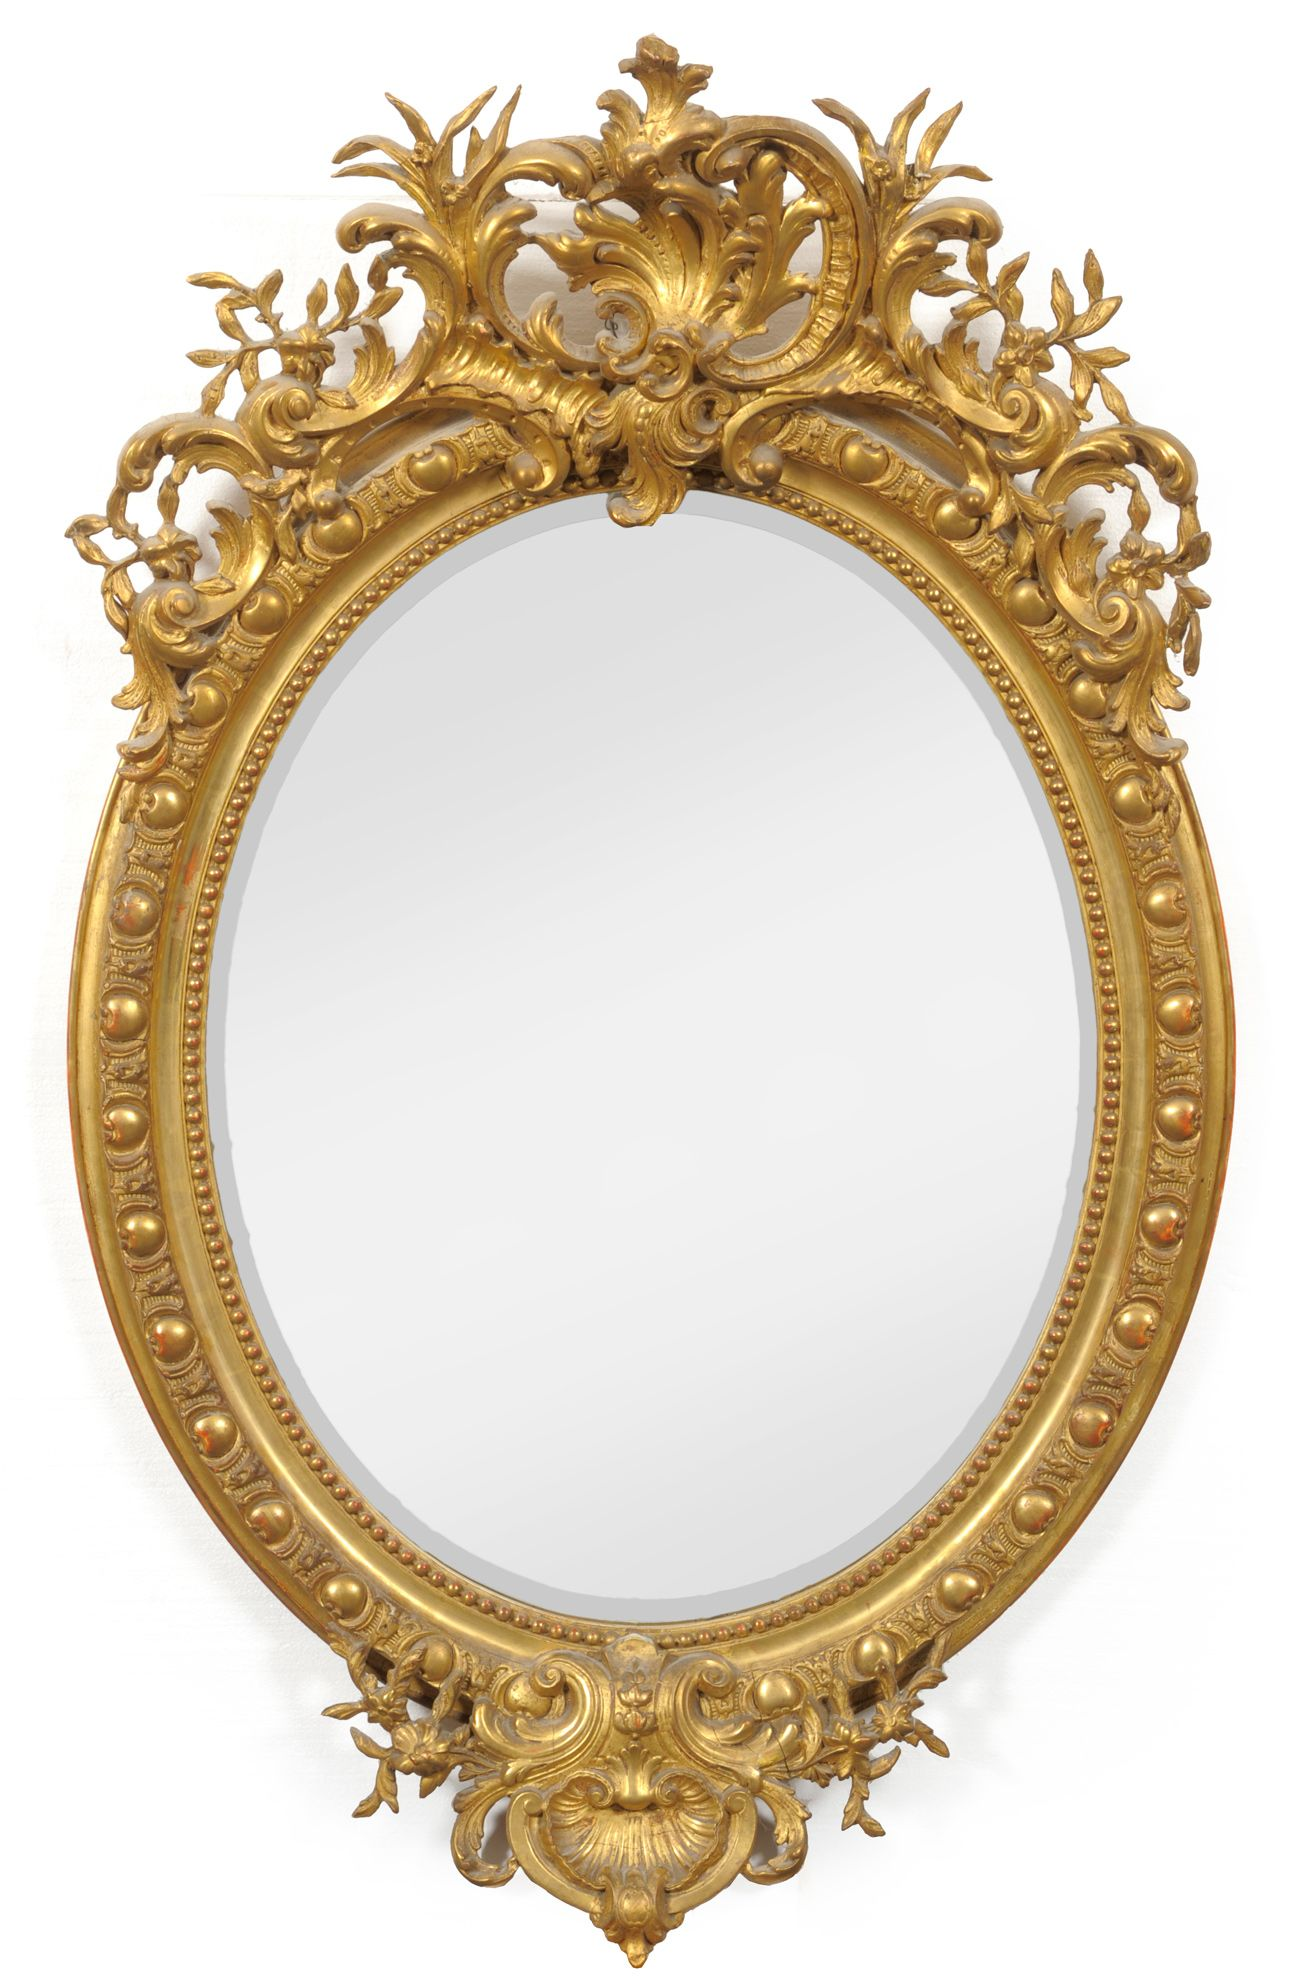 Tennants Auctioneers: An Early Victorian Gilt and Gesso Oval Wall ...